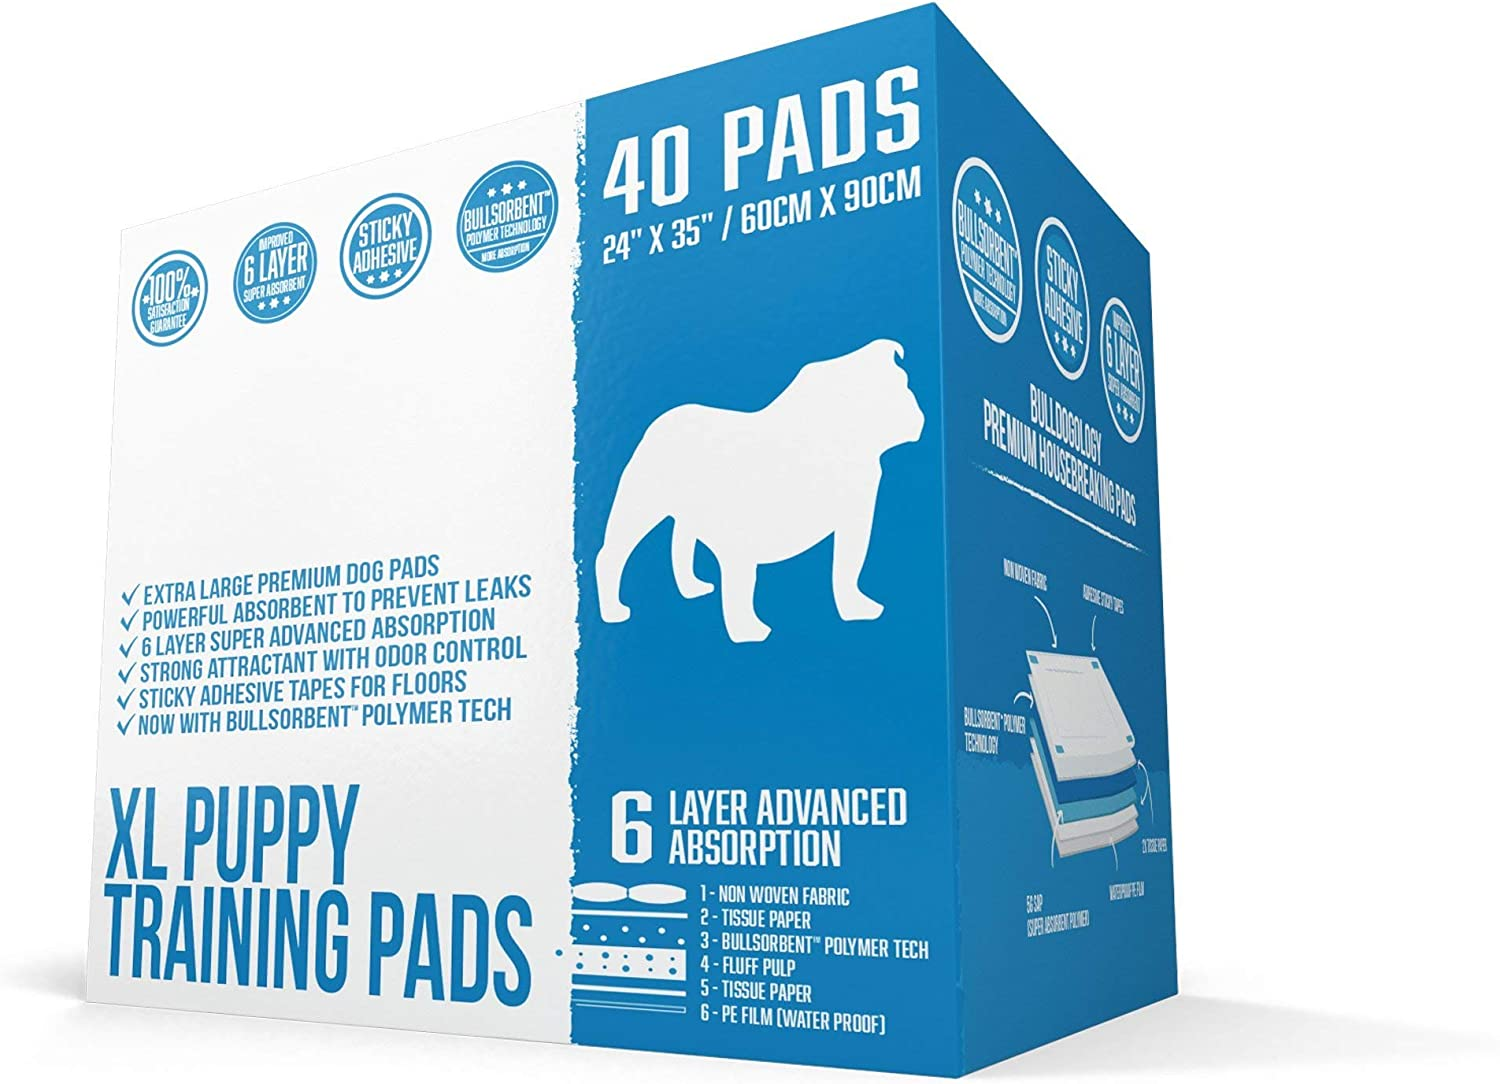 Bulldogology Puppy Pee Pads XL with Adhesive Sticky Tape  30 Extra Large Dog Training Premium Wee Pads (24x35) 6 Layers with Extra Quick Dry Bullsorbent Polymer Tech